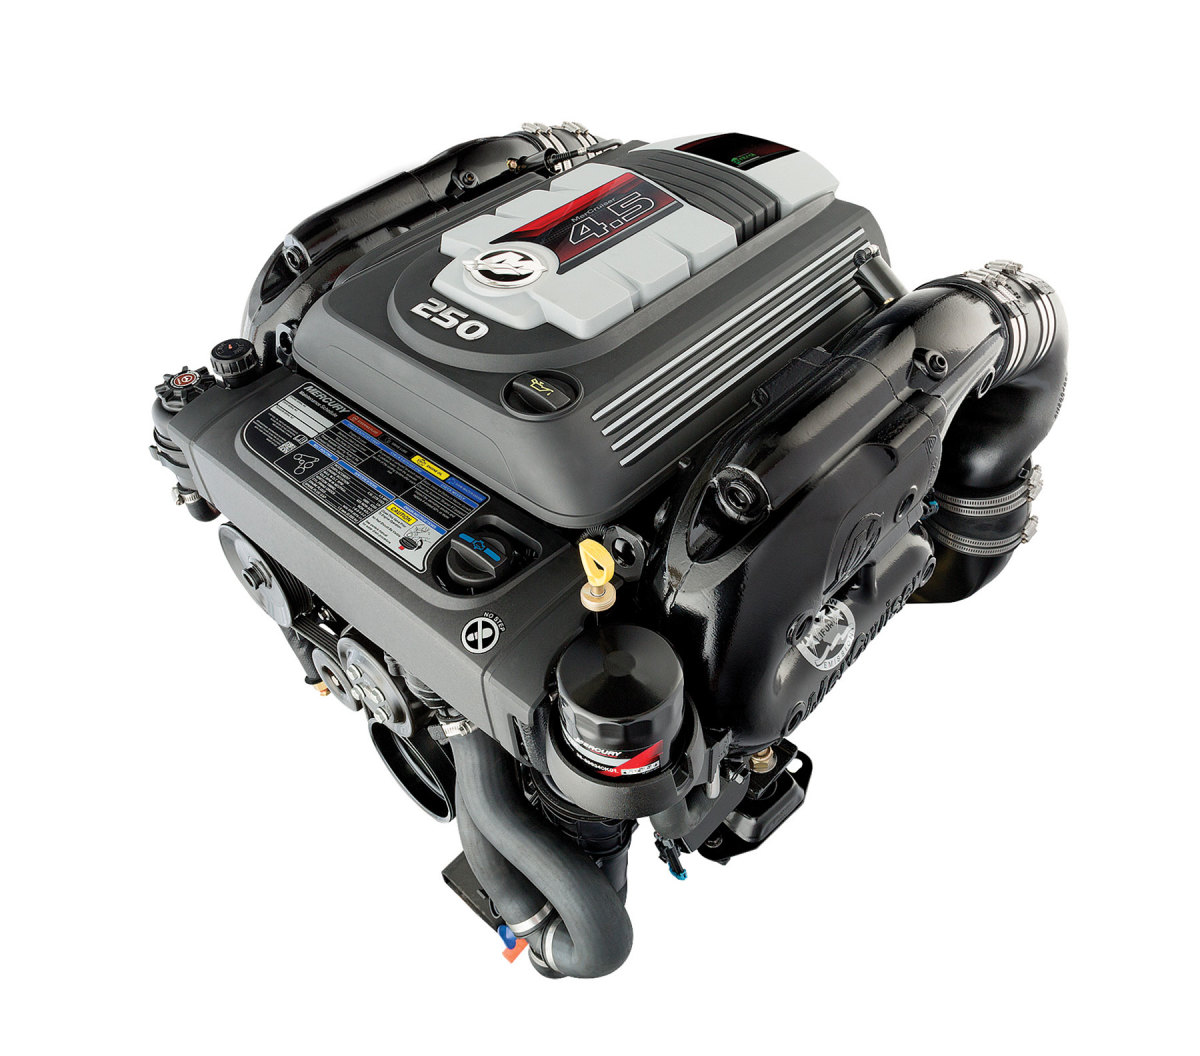 The new drive can be paired with several MerCruiser engines, including the 250-hp, 4.5-liter V-6.